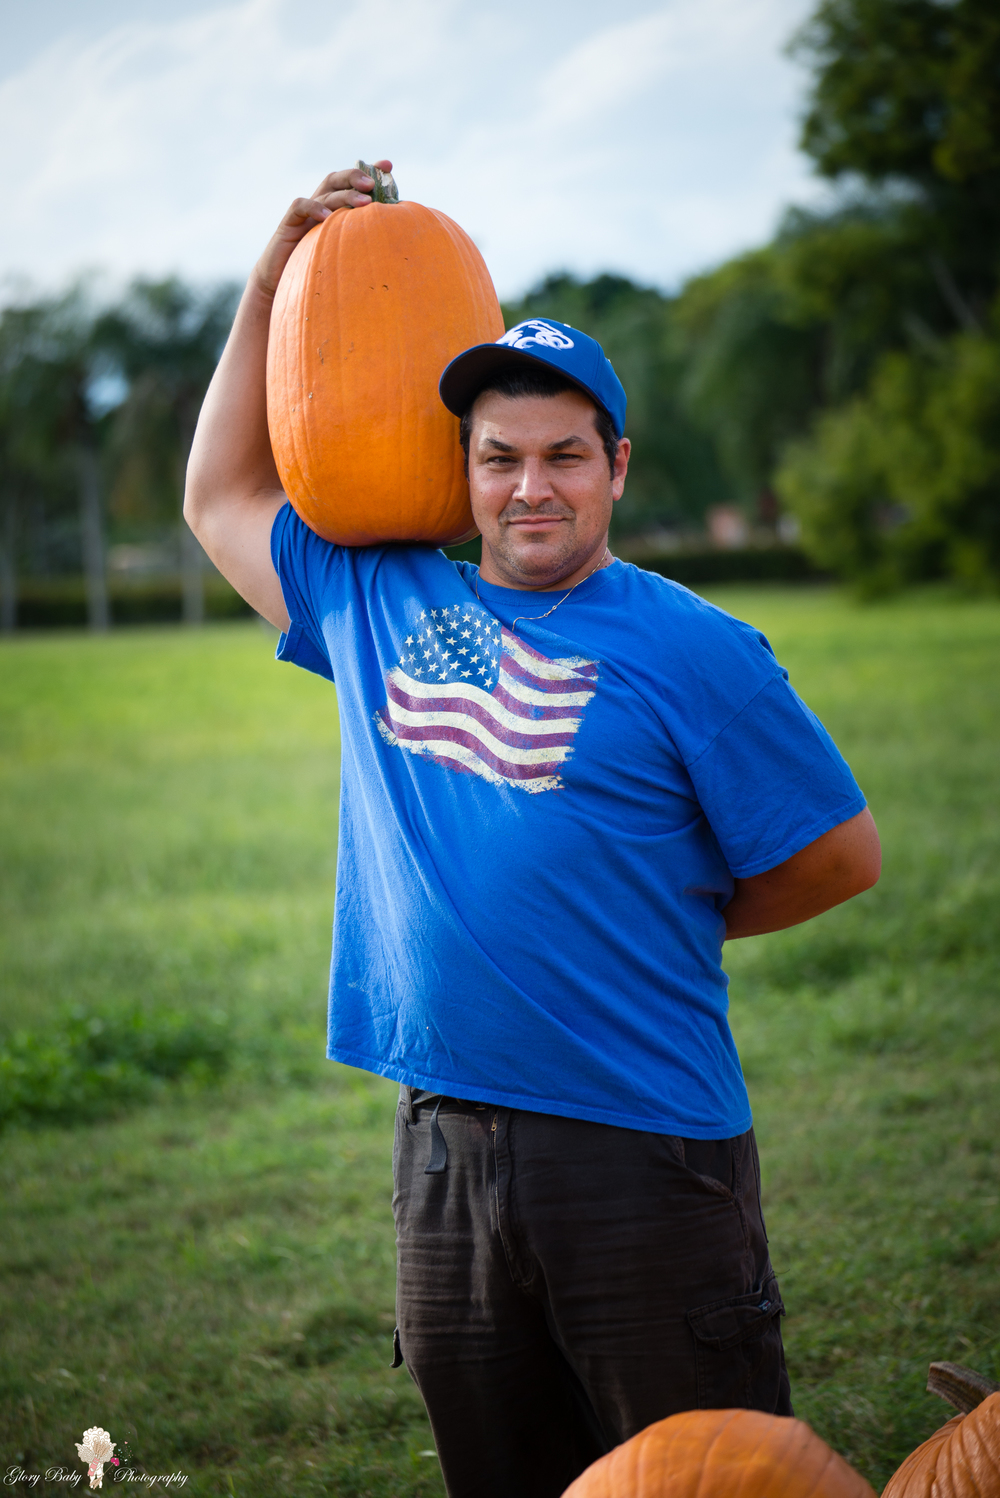 PumpkinPicking2015wm (31 of 64).JPG